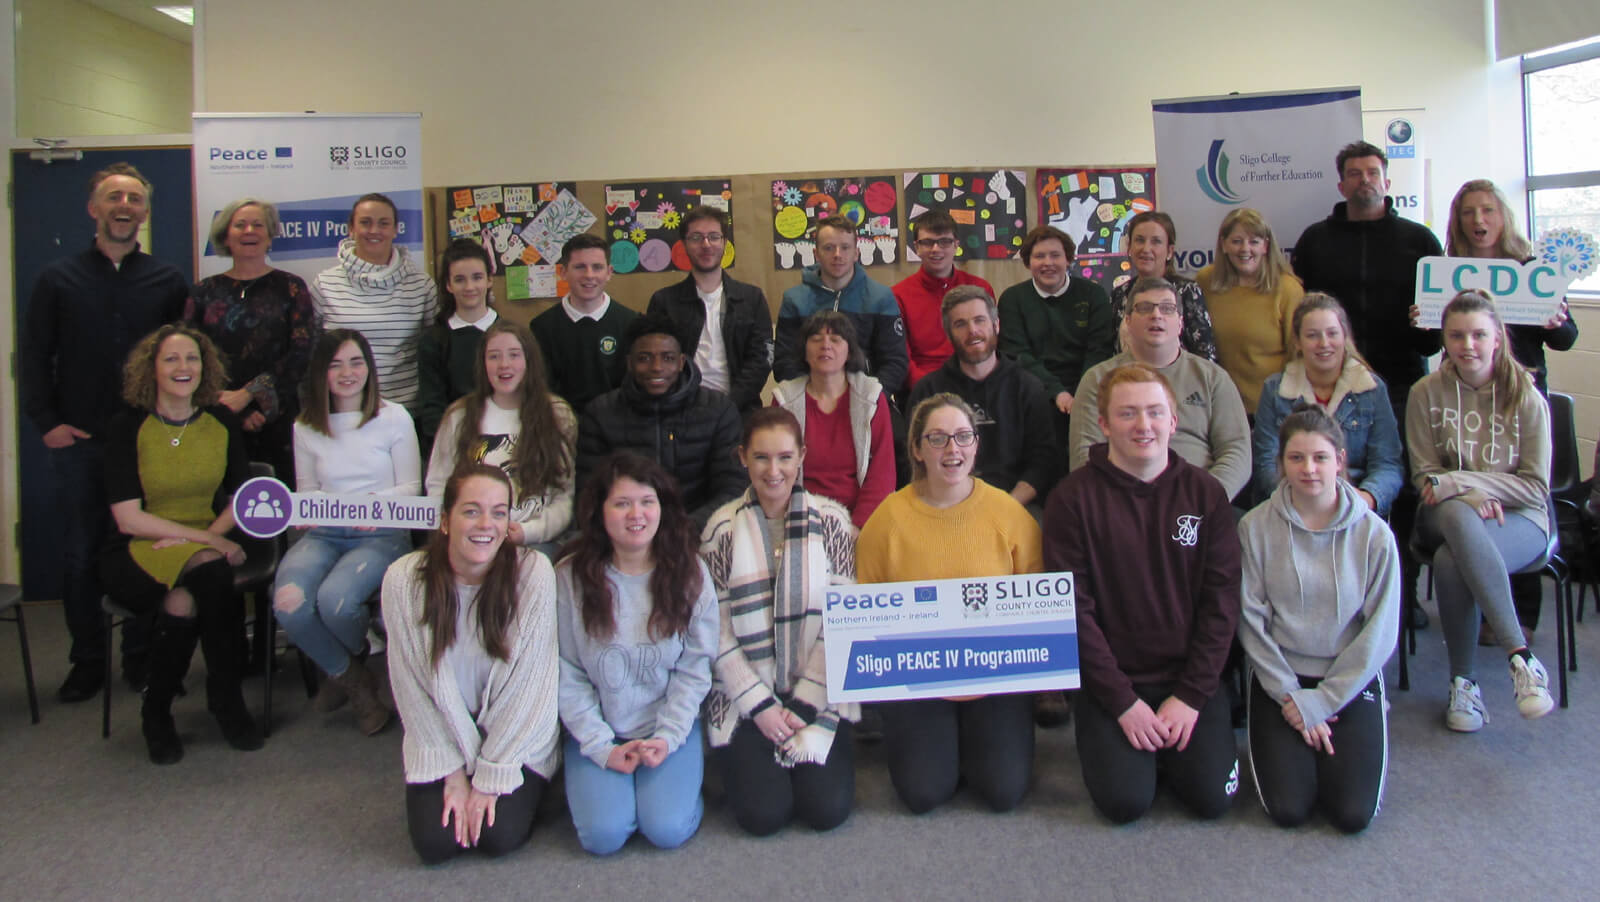 Sligo Students Study Conflict through PEACE